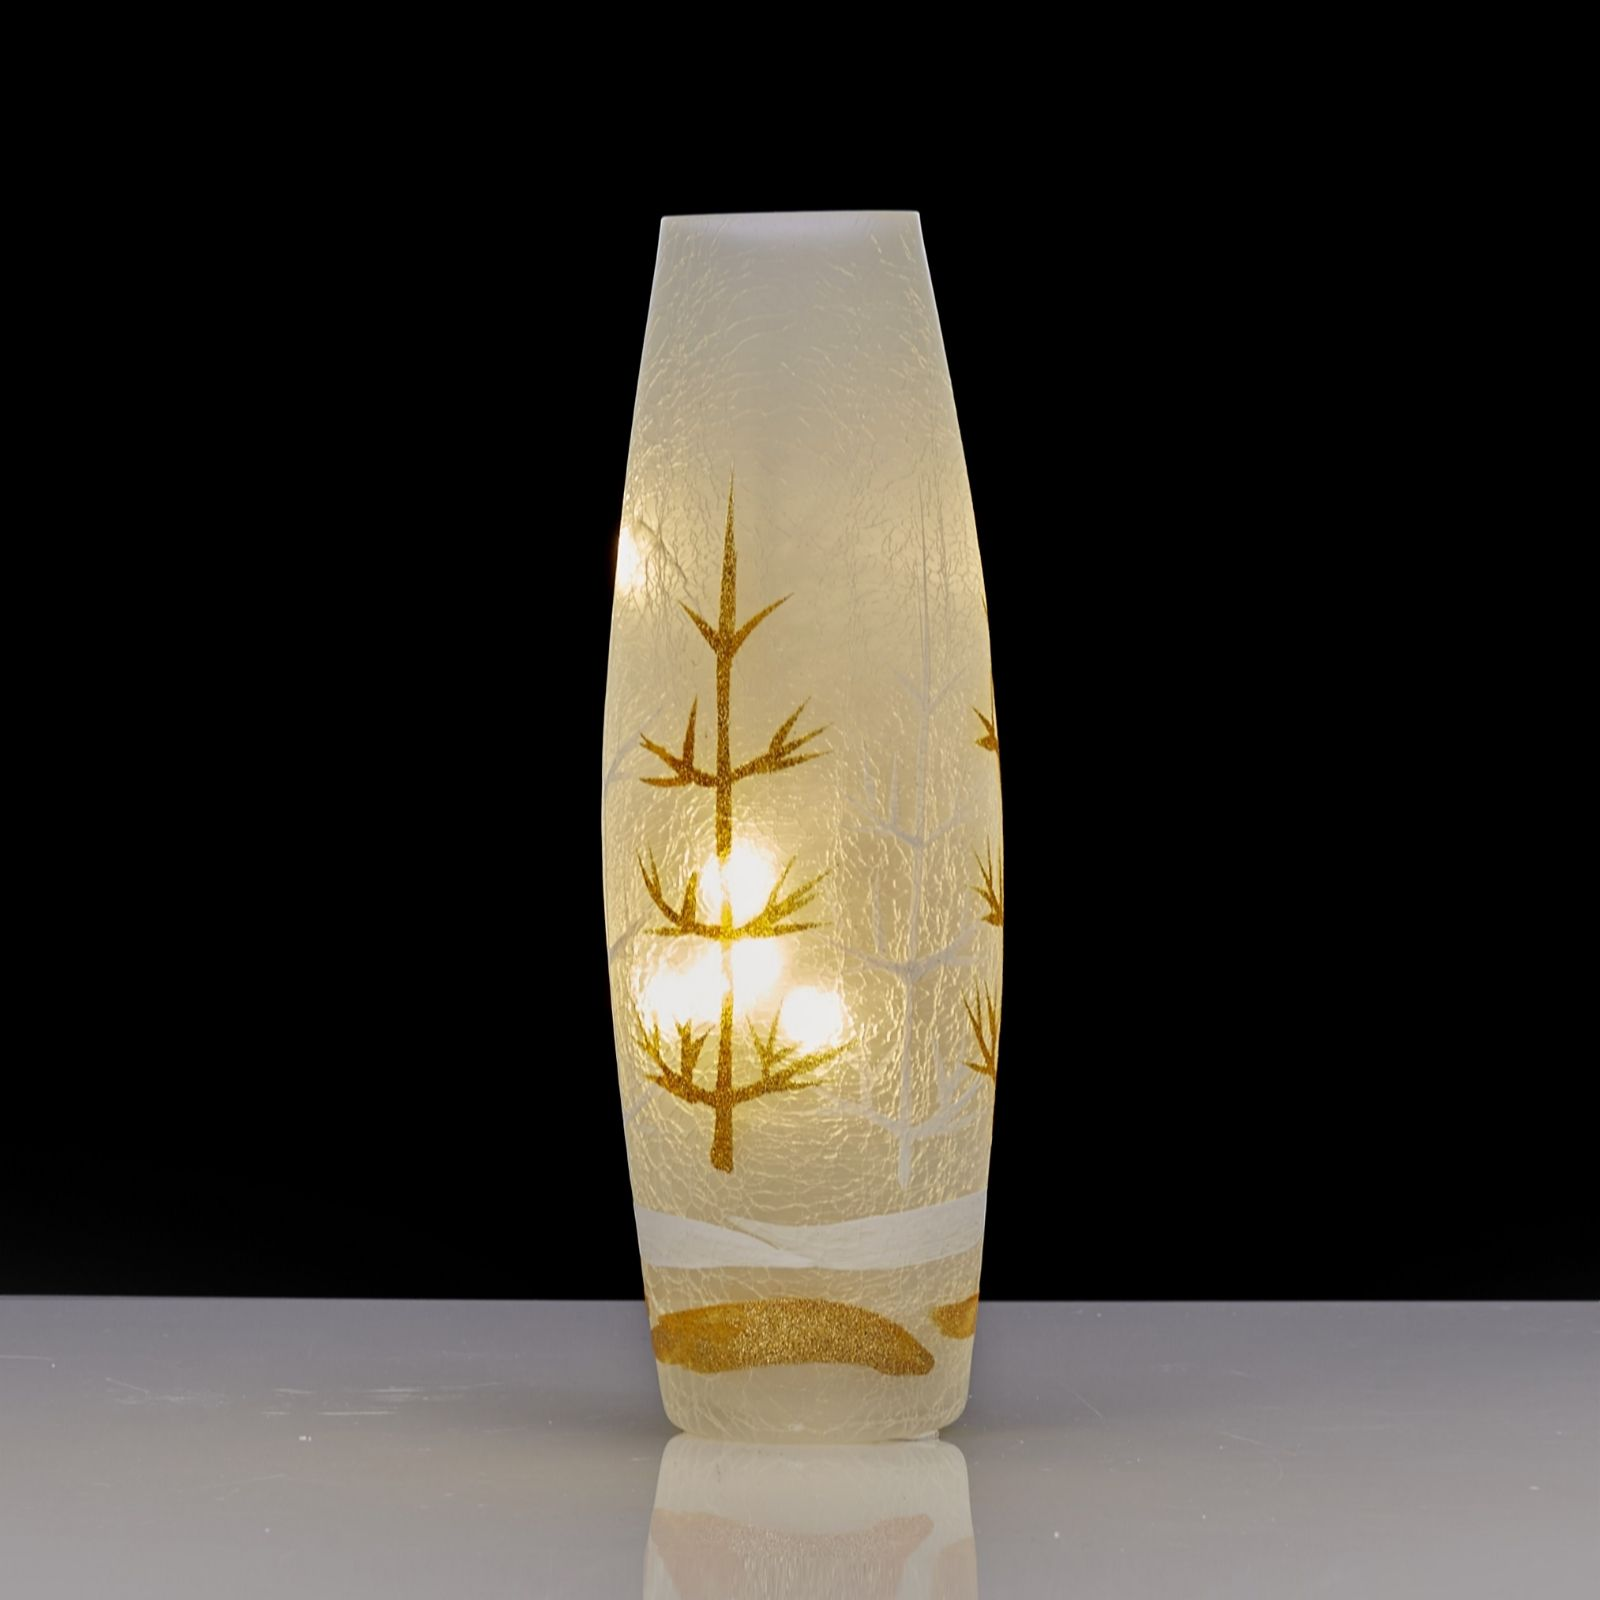 Home Reflections Festive Frosted Glass Vase with LED String Lights - 704759 QVCUK.com